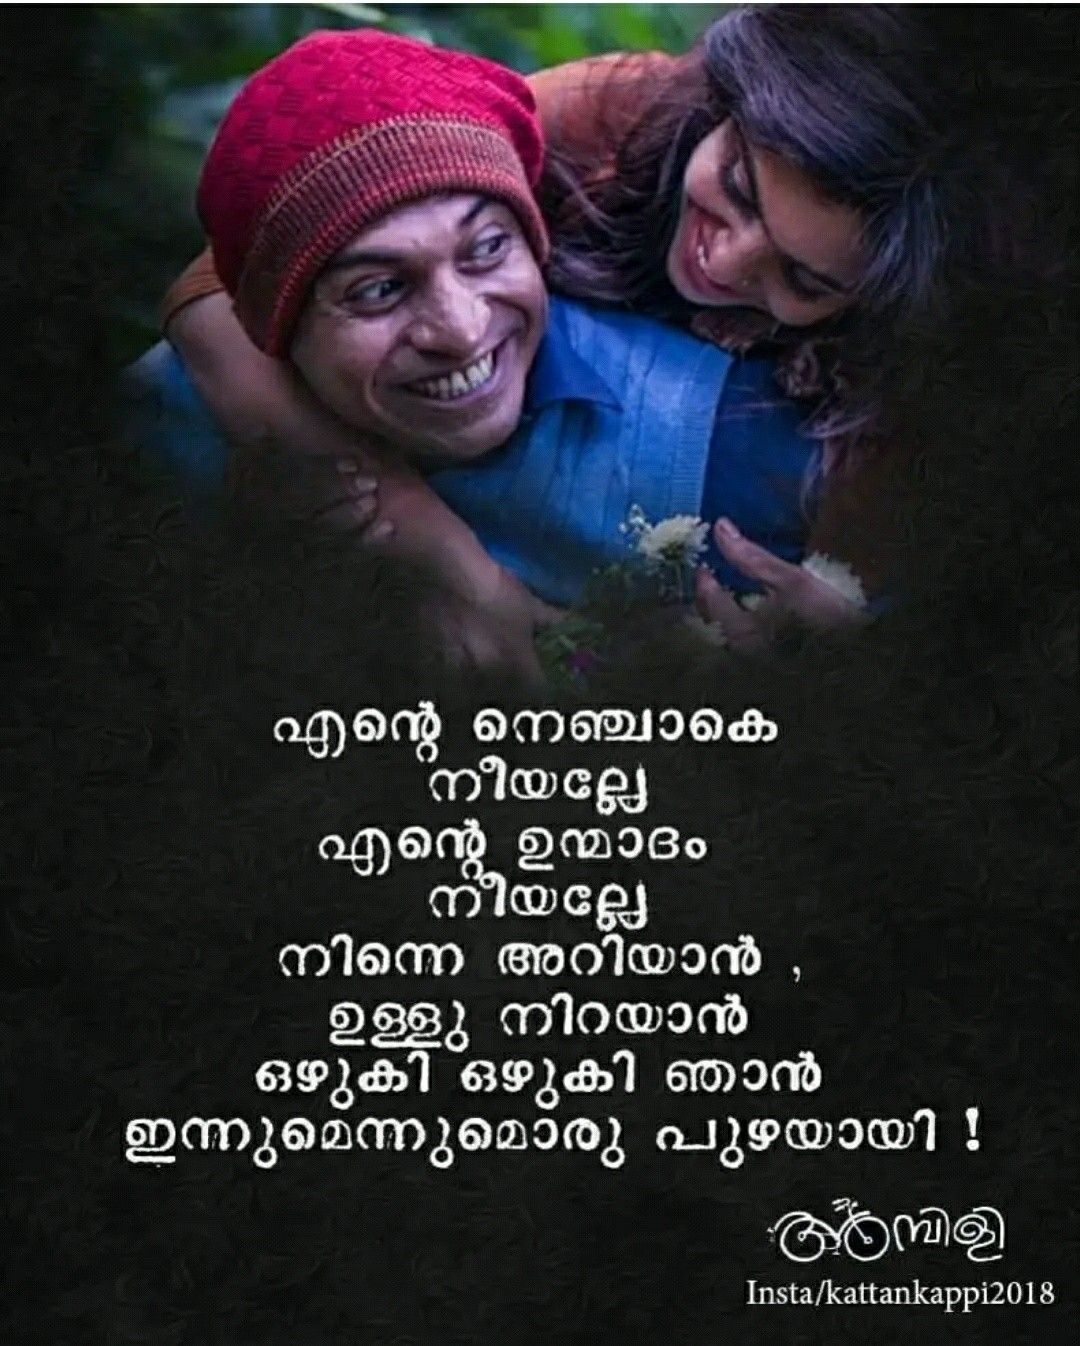 Pin by Sujeeshma Sujee on fvrt Malayalam quotes, Love